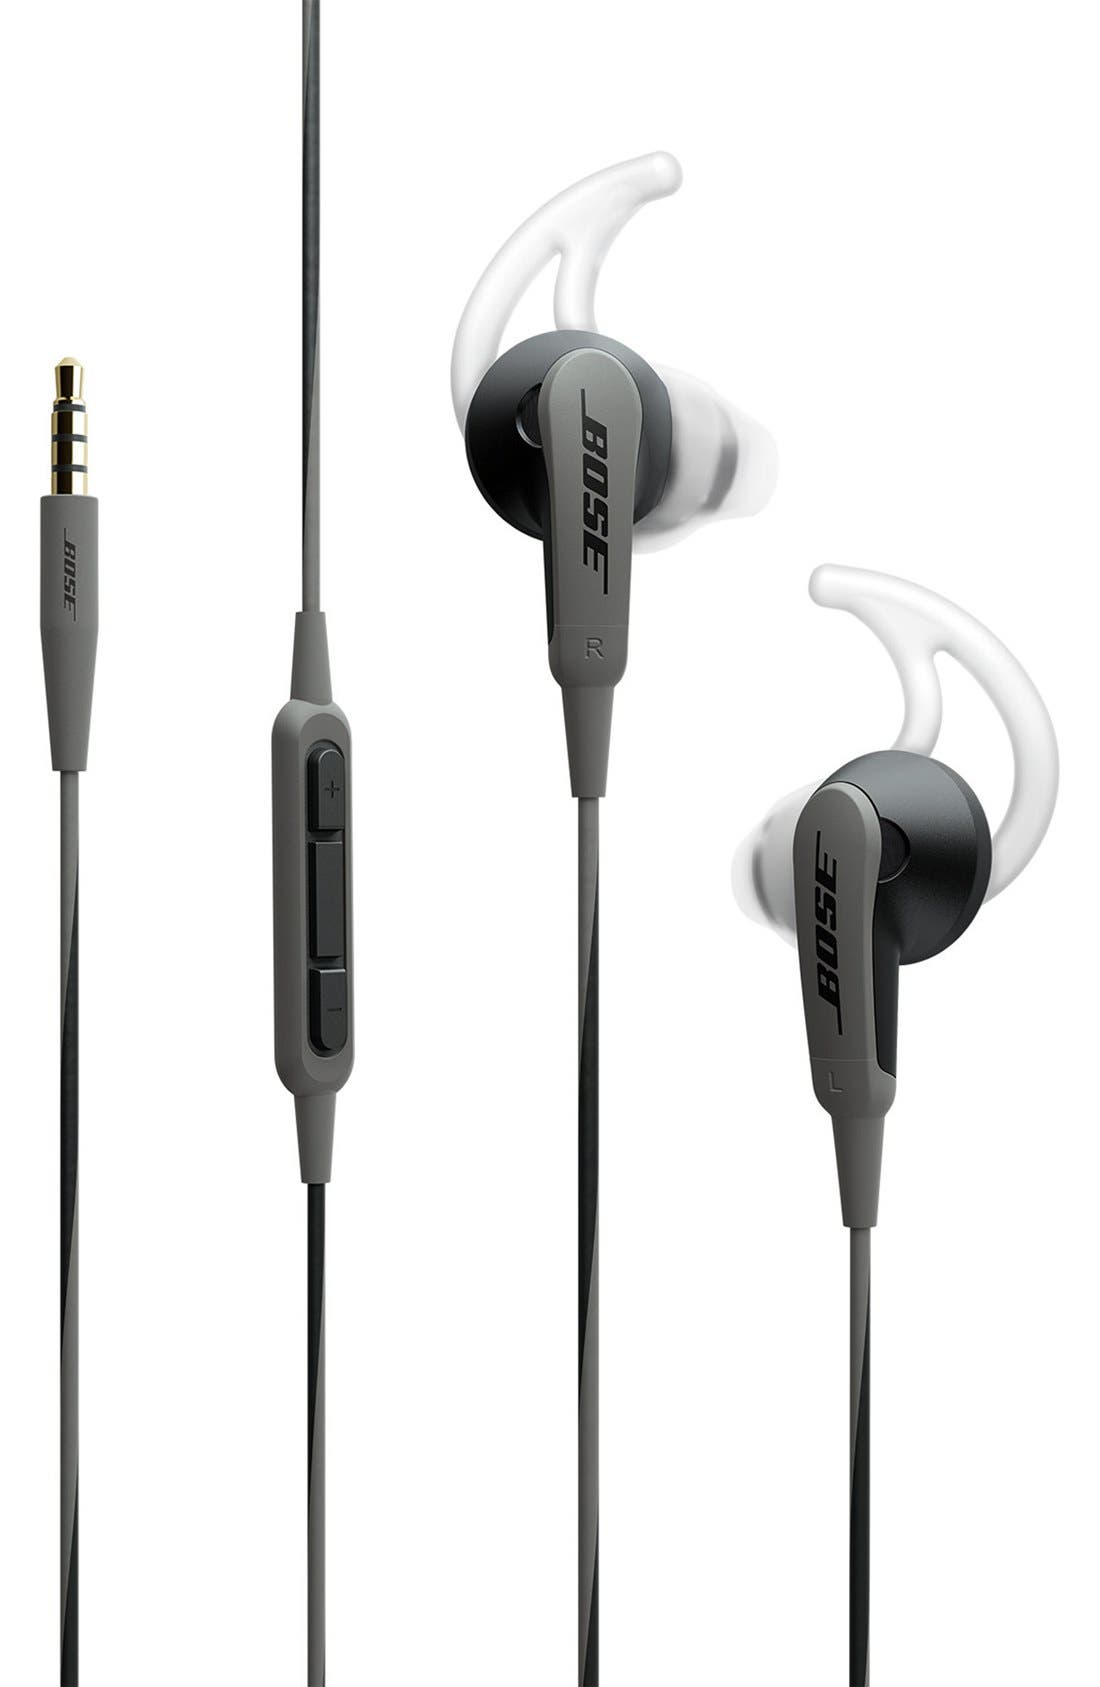 Bose® SoundSport® In-Ear Headphones for iPhone